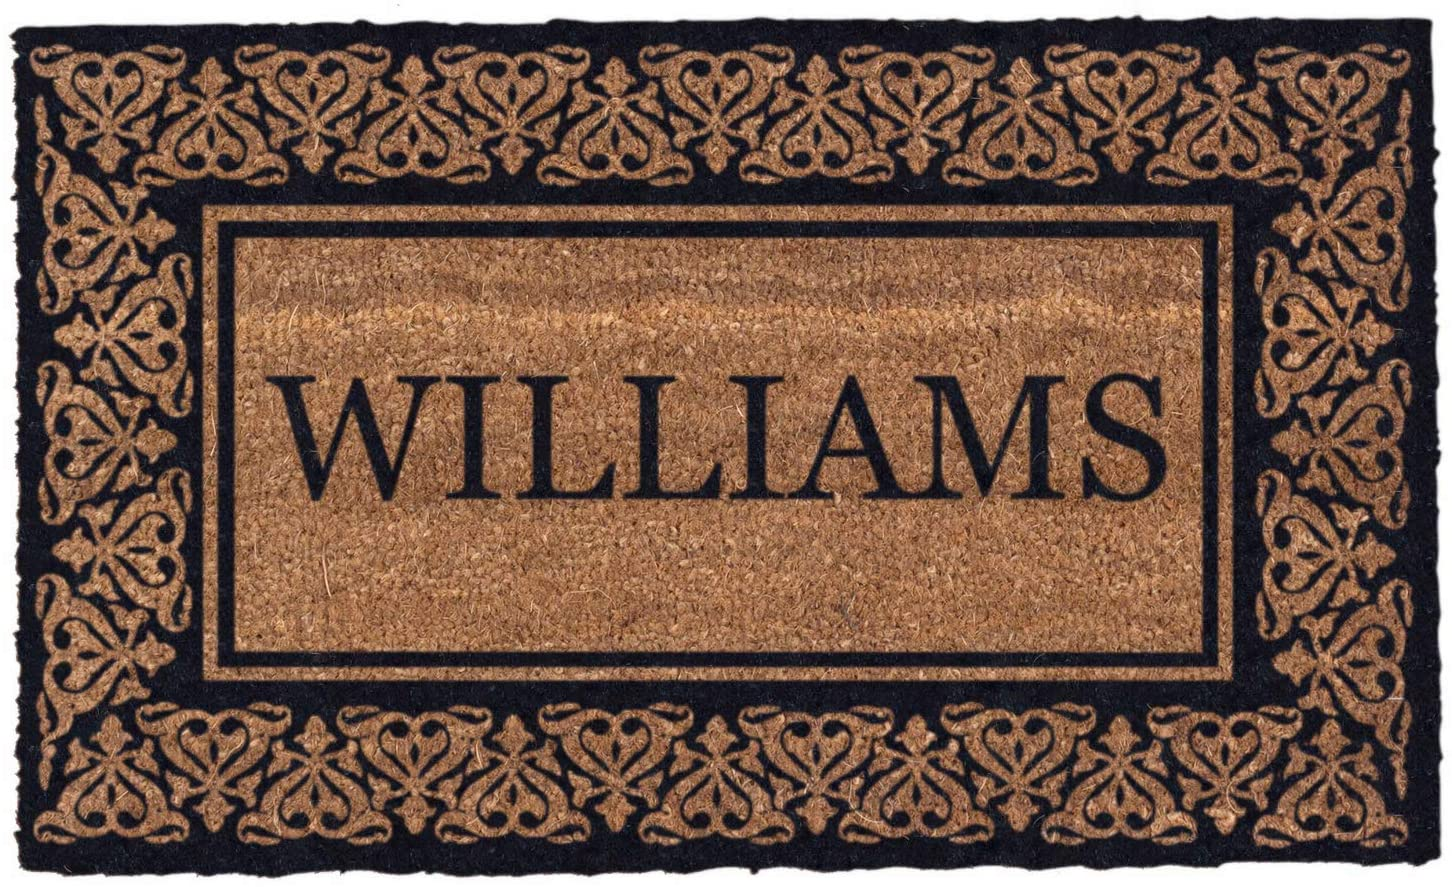 Coco Mats 'N More Black Blooming Hearts Bordered Personalized Coco Doormat 38